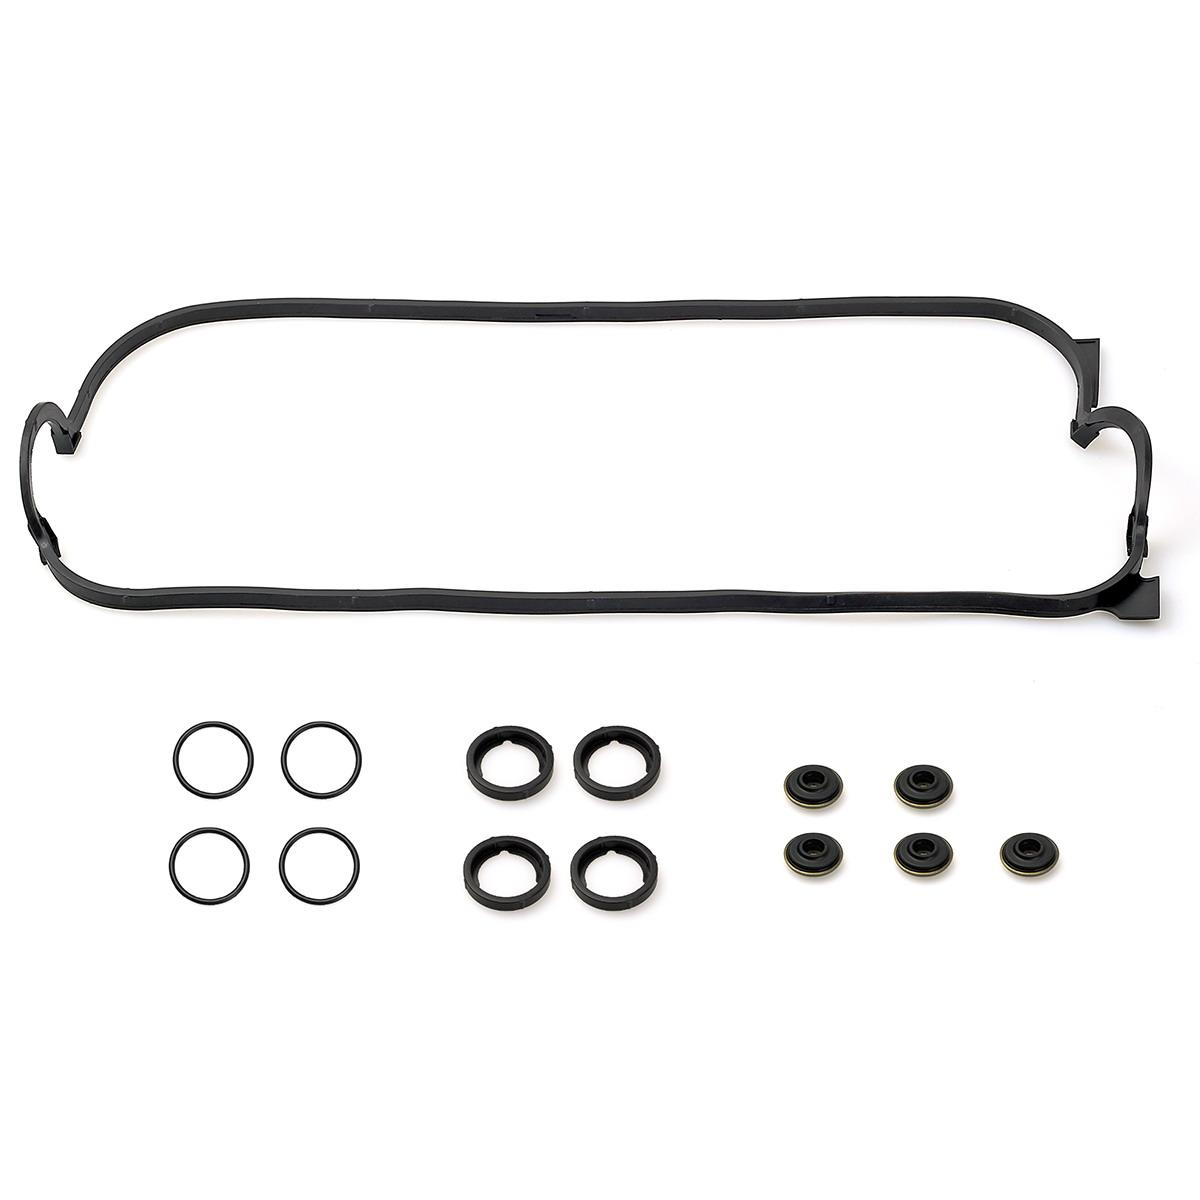 Engine Valve Cover Gasket Set Fits HONDA ACCORD DX LX 2.2L